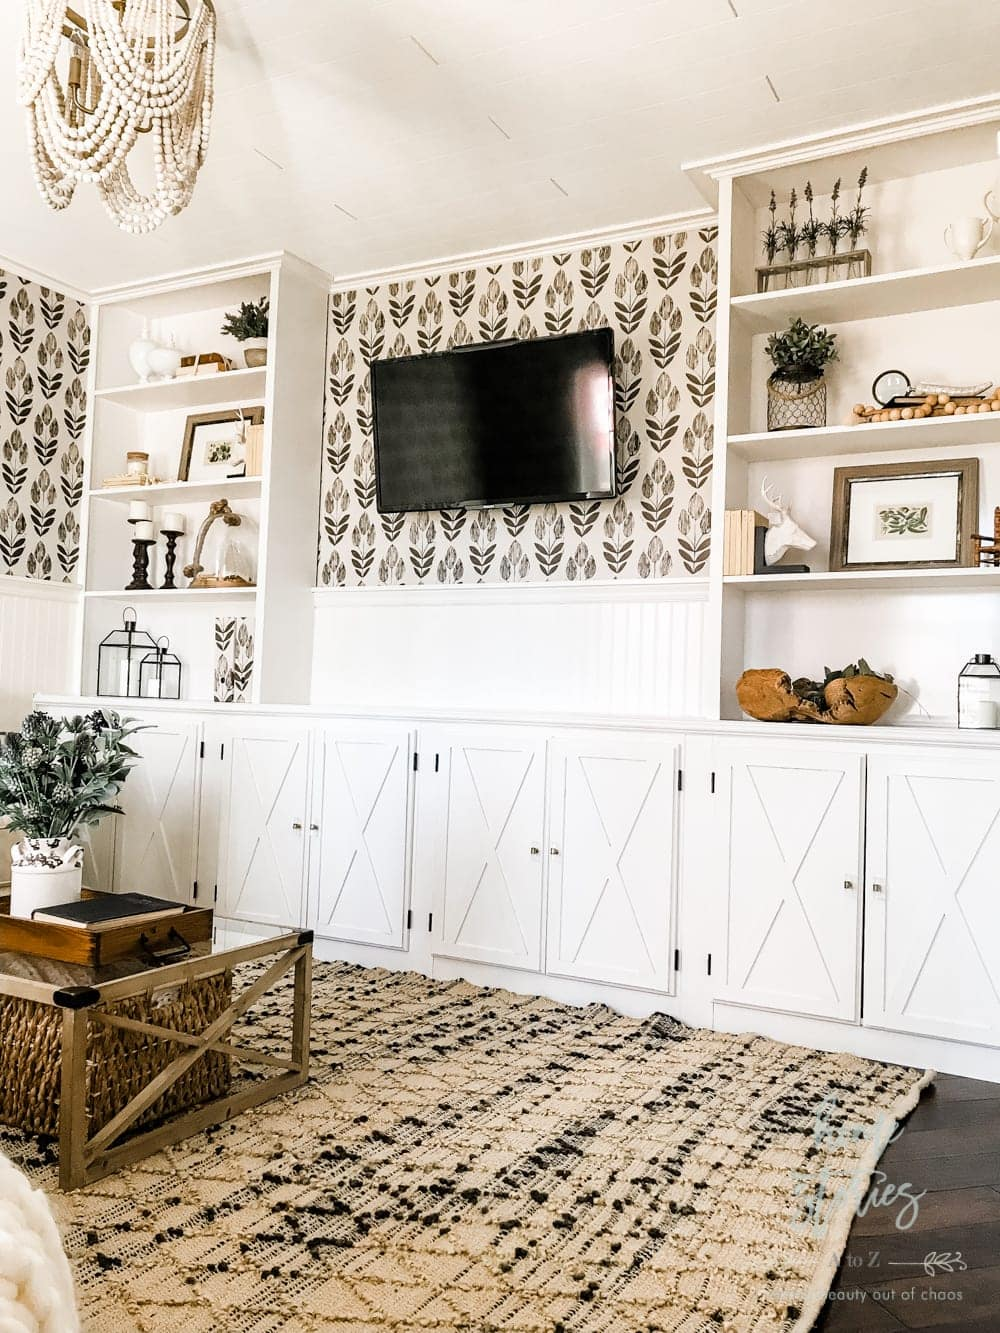 Put up pretty wallpaper behind a TV. A little pattern can go a long way and make your TV look cute in the process.